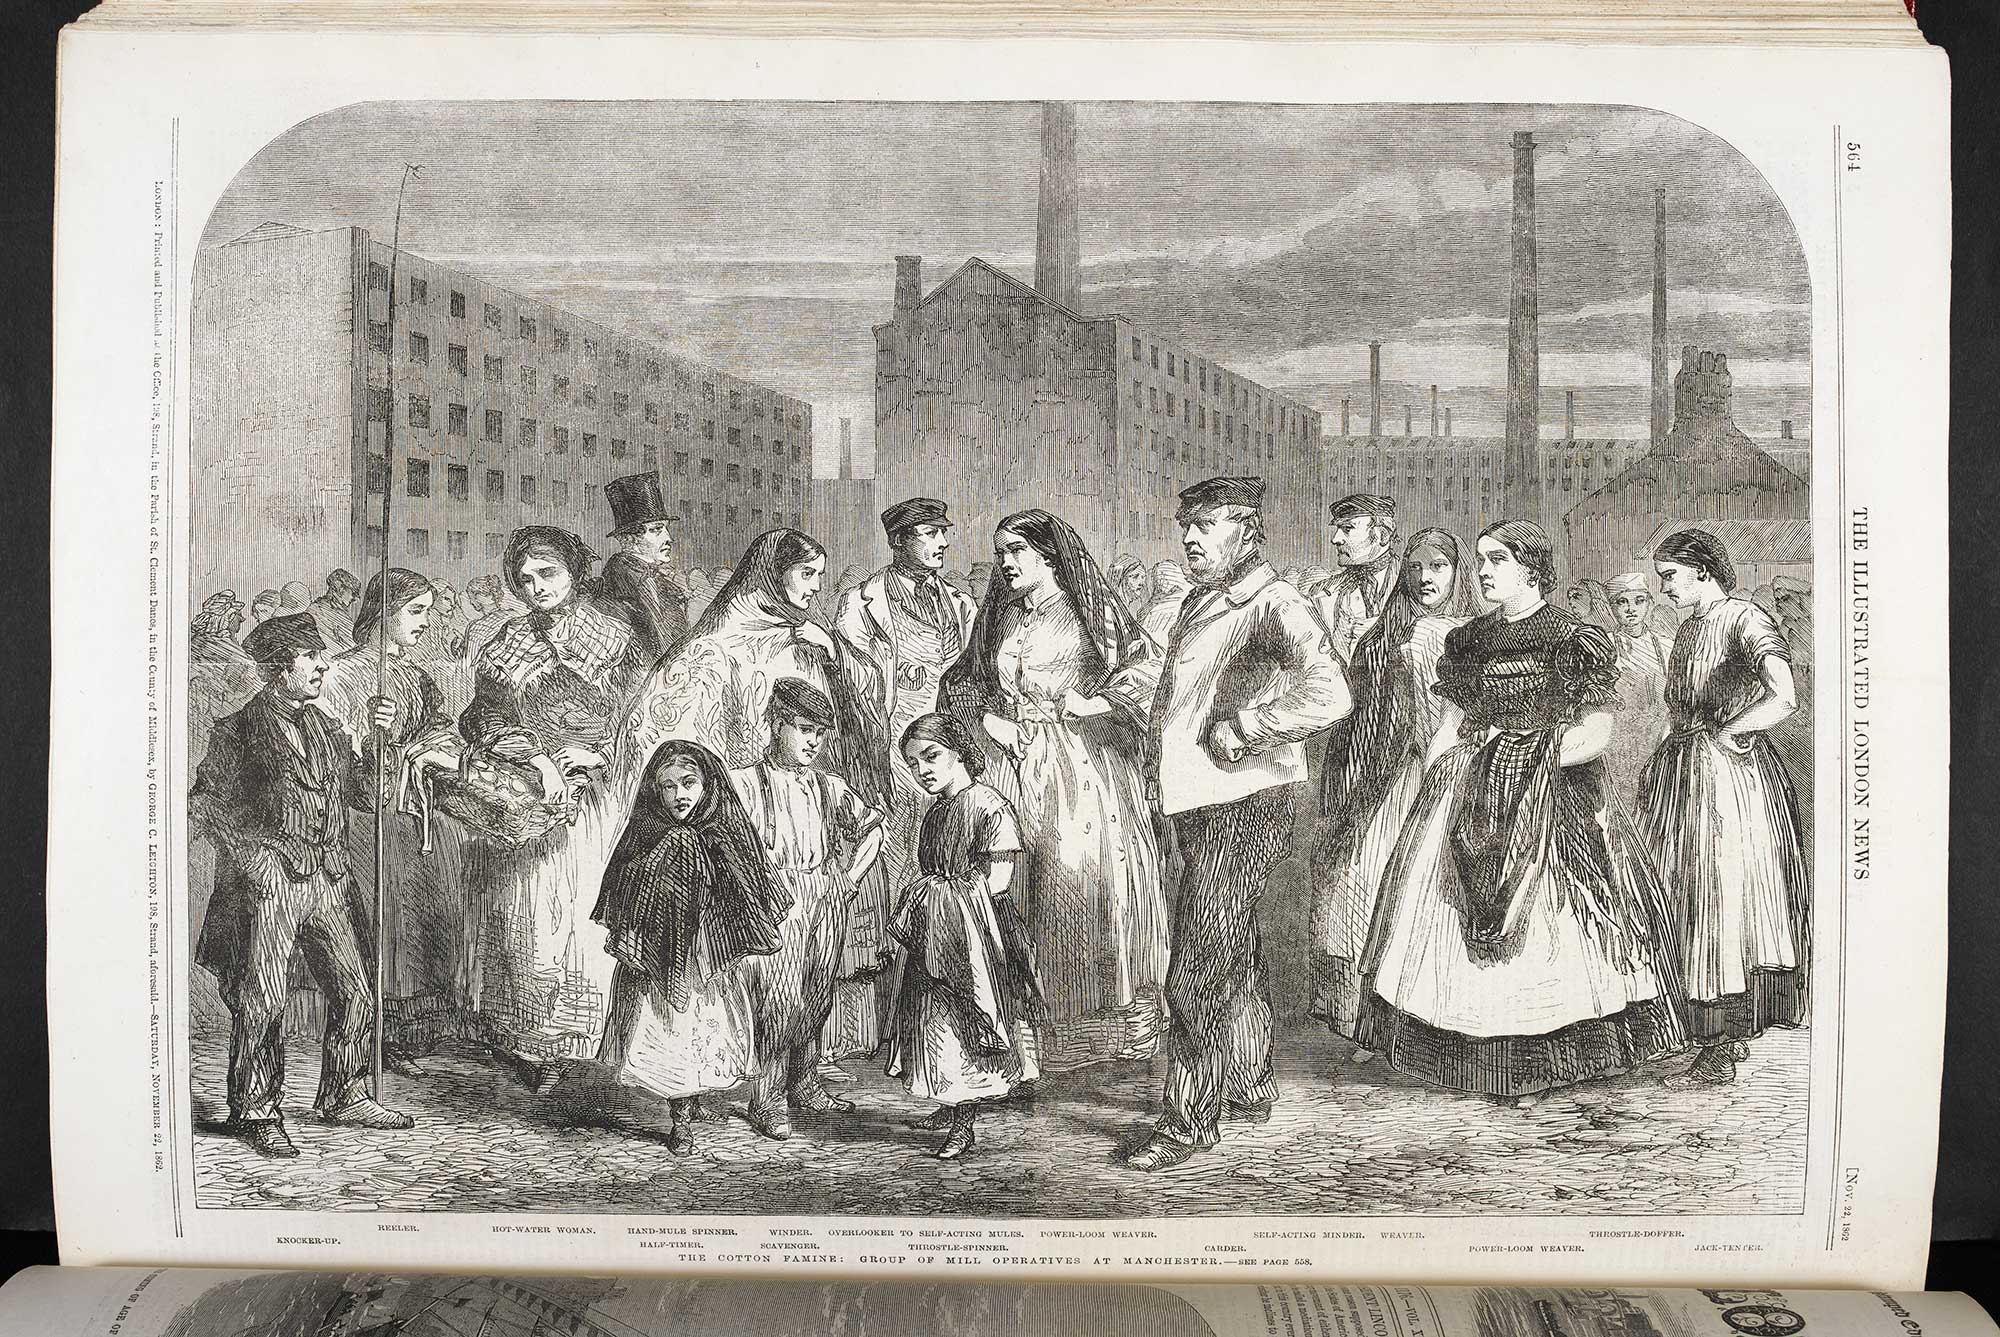 The cotton famine - group of mill operatives at Manchester' from the Illustrated London News [page: vol. 41 p. 564]